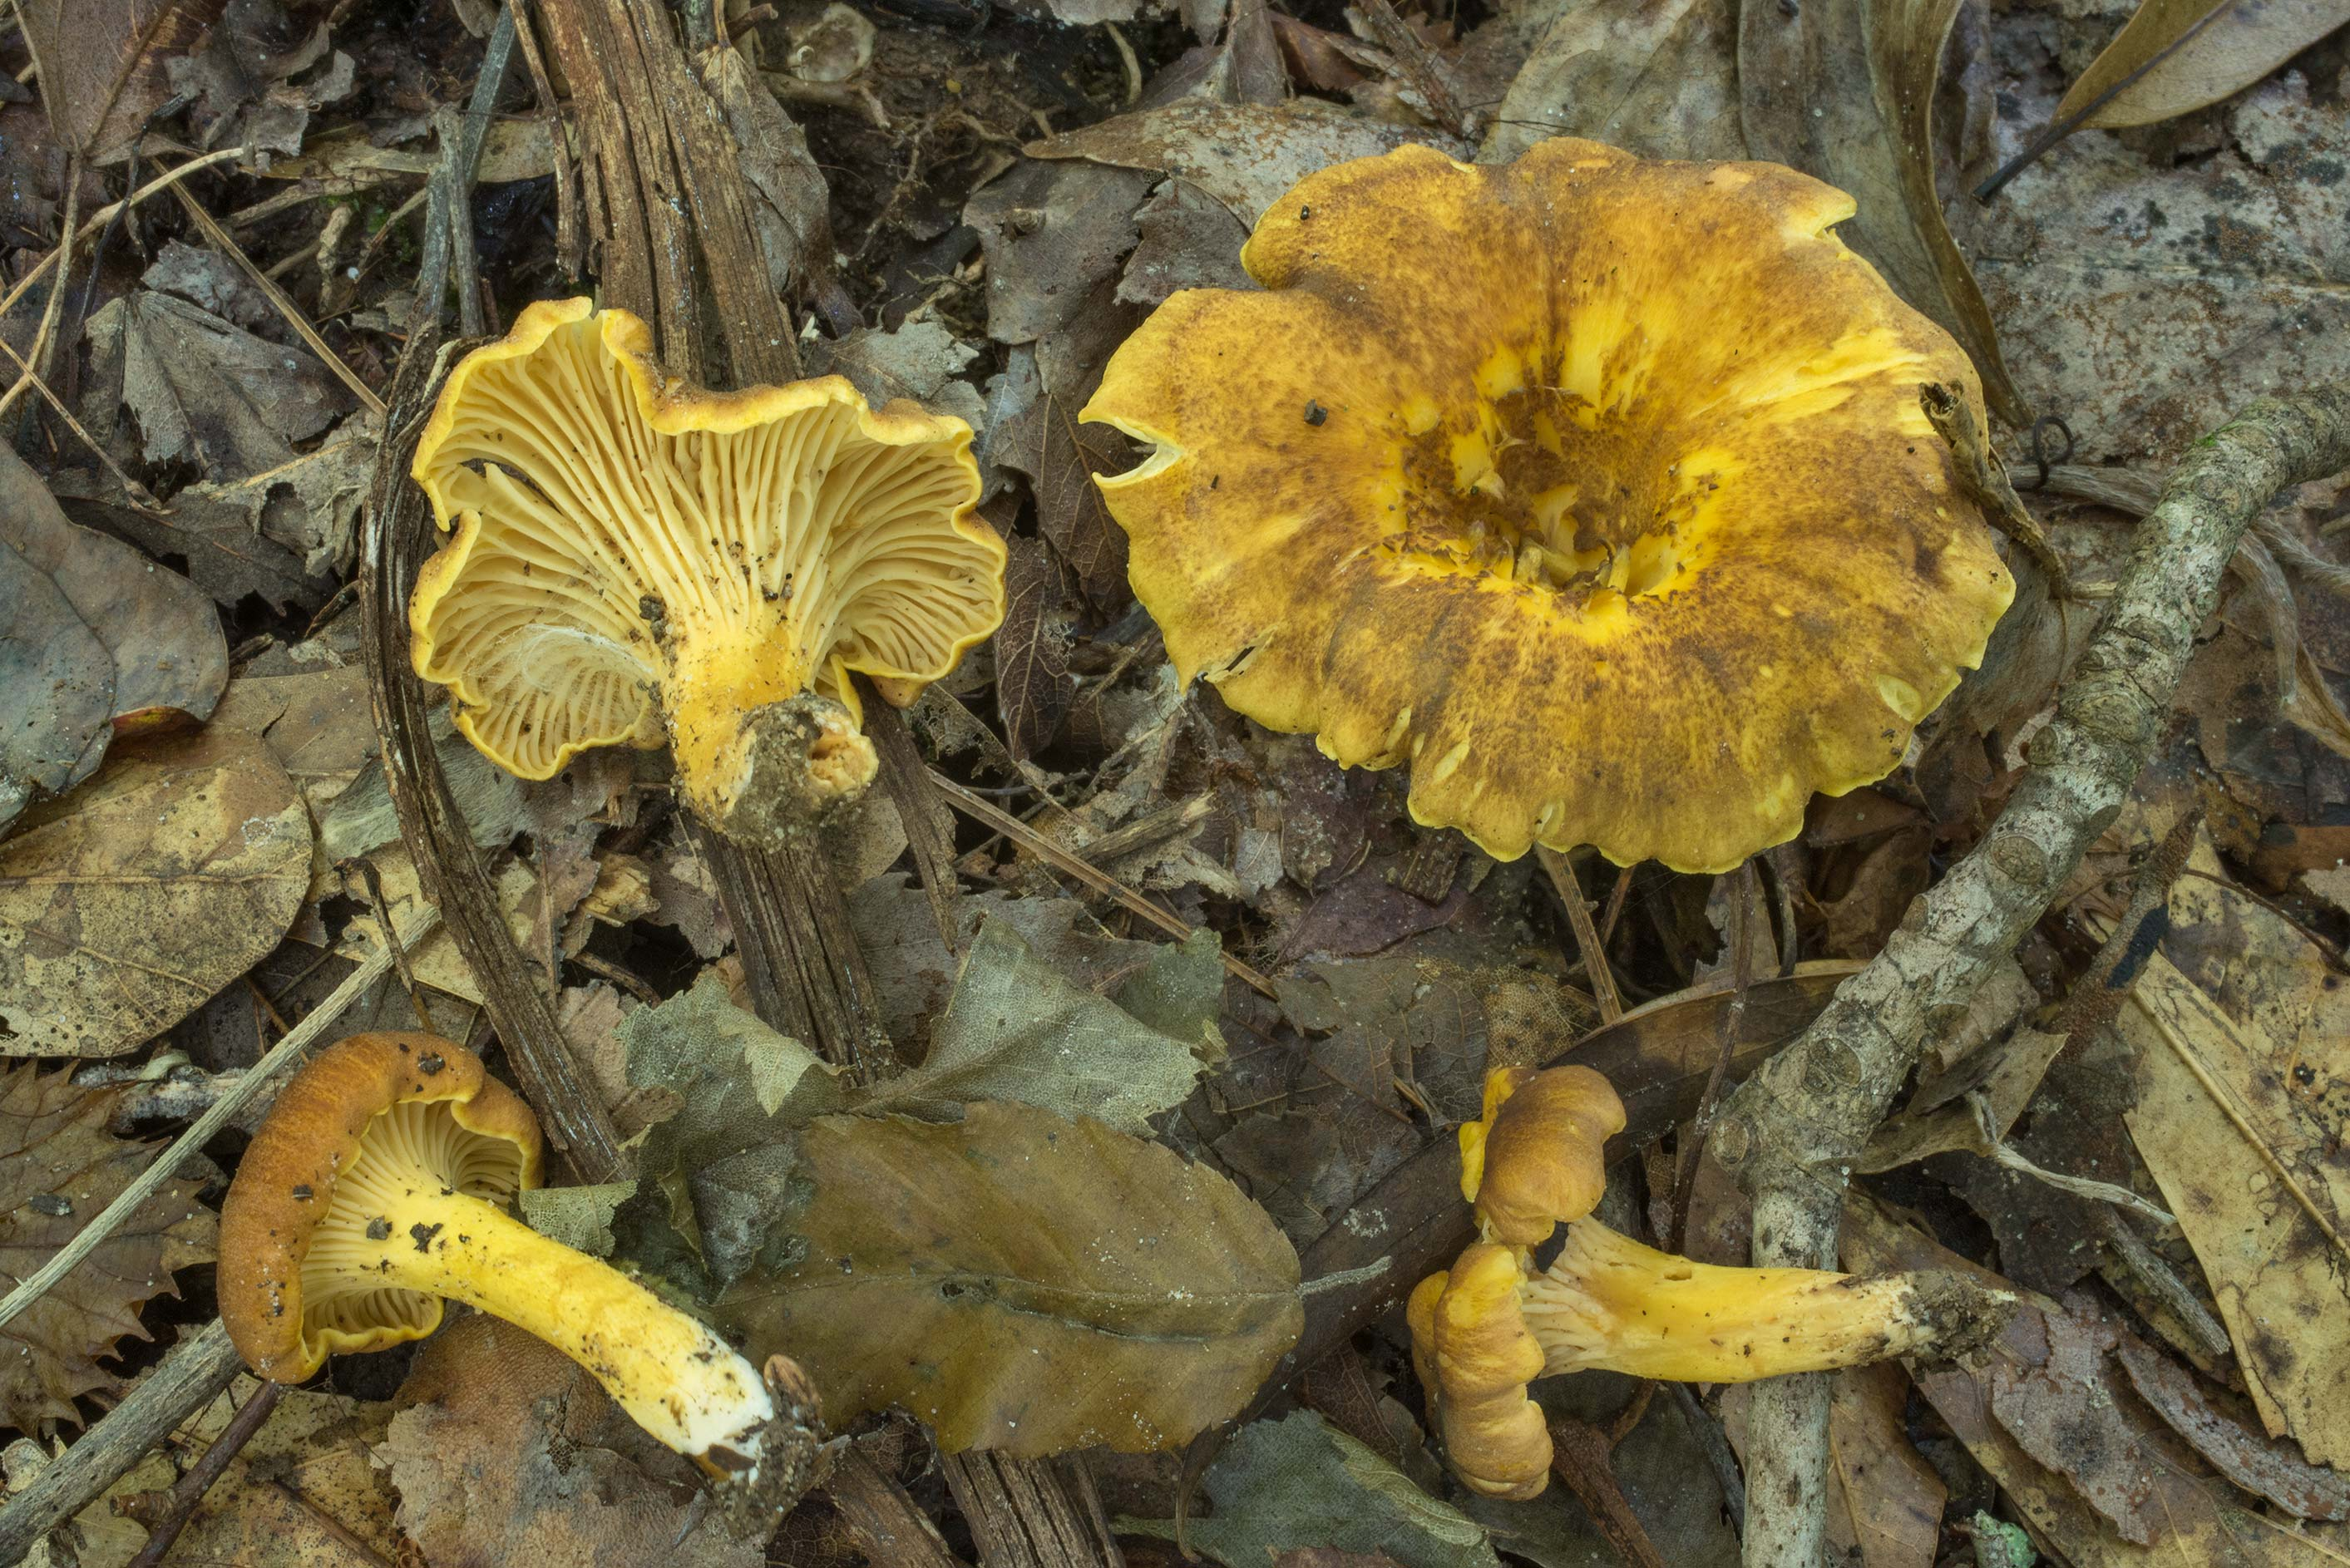 Chanterelle mushrooms Cantharellus appalachiensis...National Forest. Shepherd, Texas